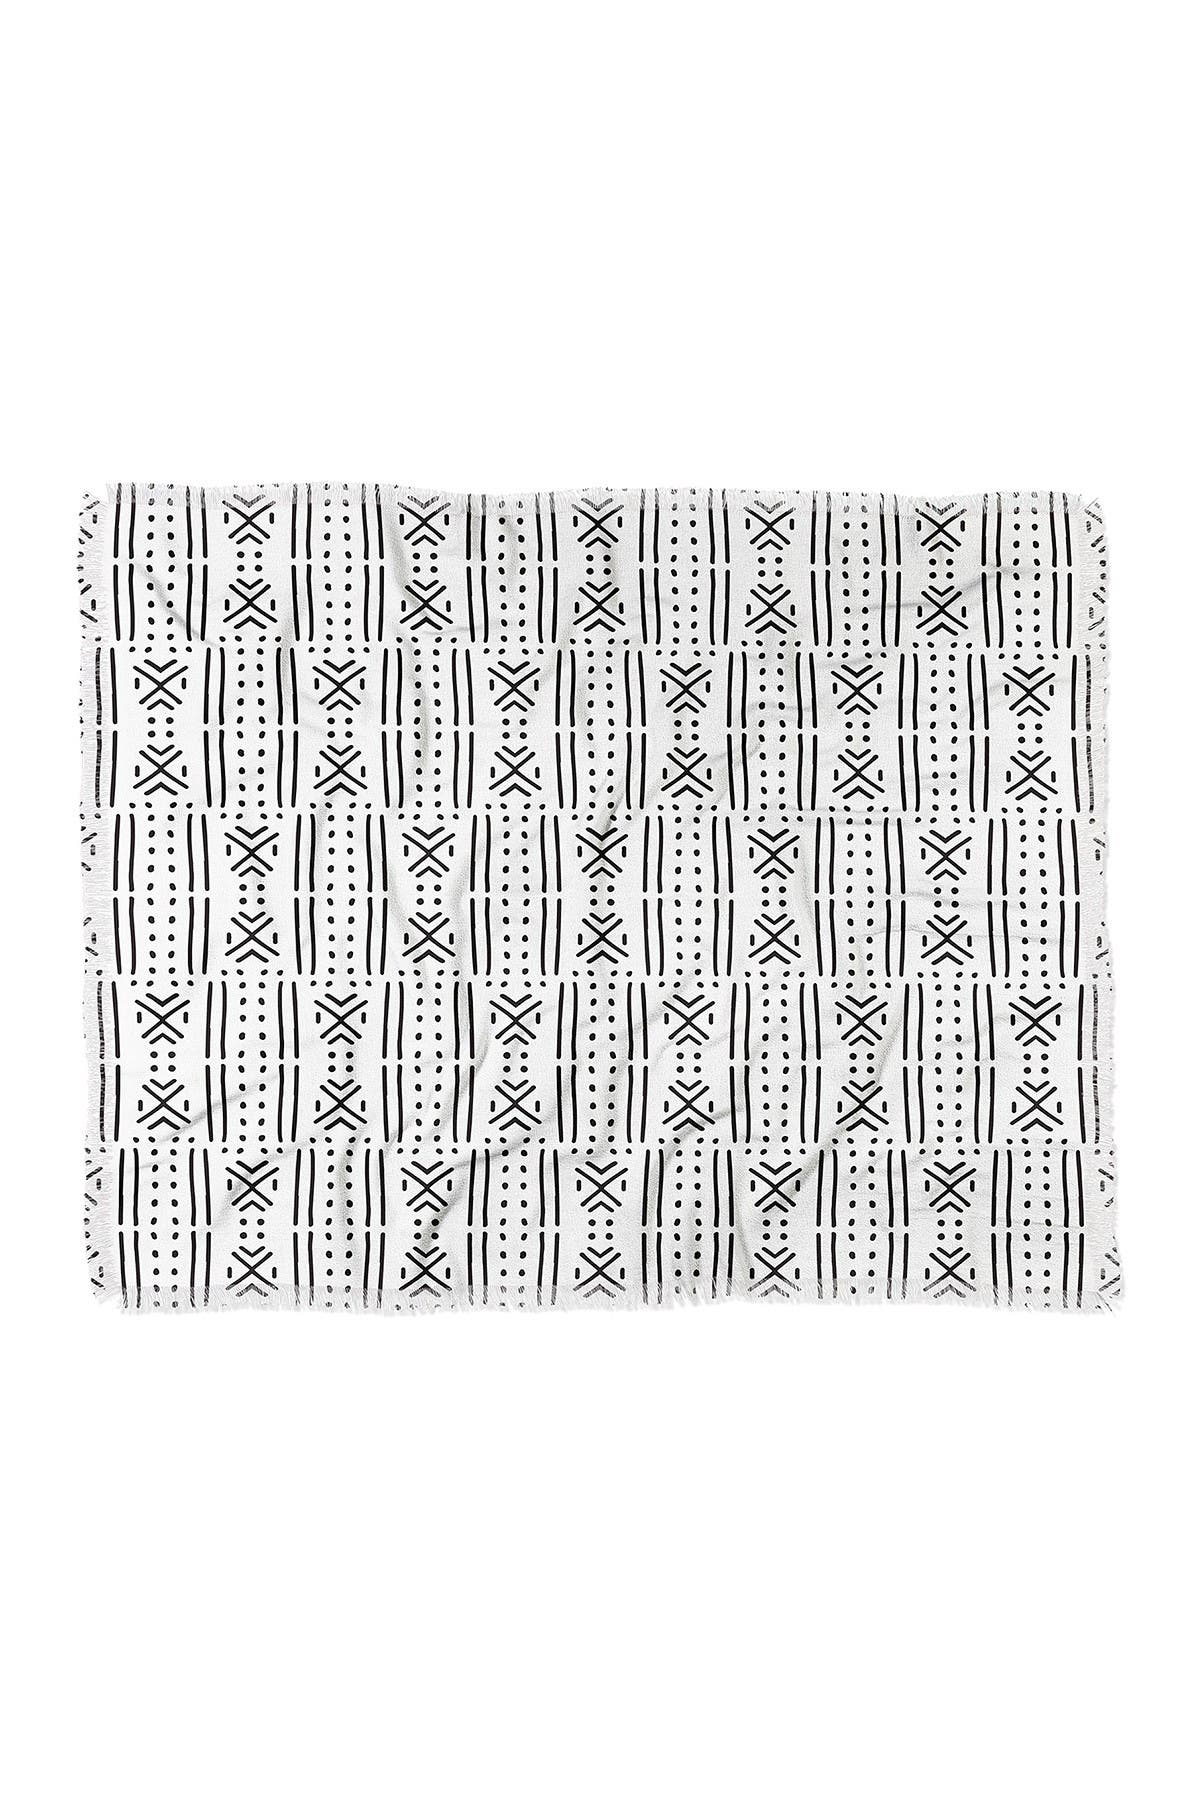 Image of Deny Designs Holli Zollinger Mudcloth White Woven Throw Blanket